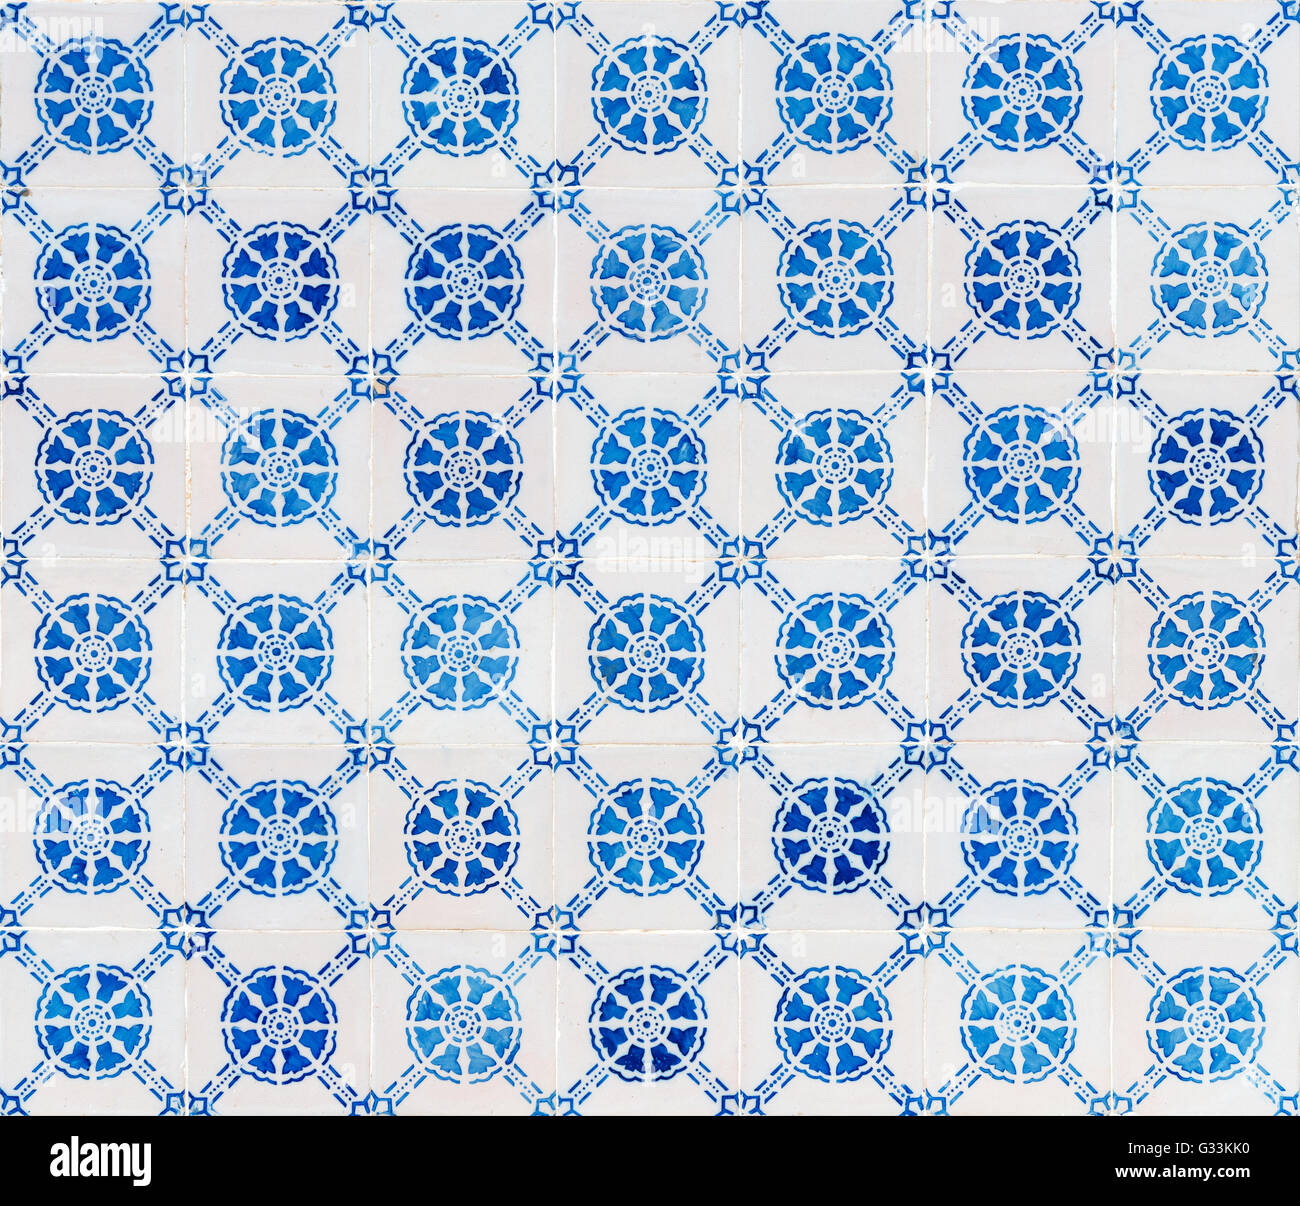 Modèle sans couture faite de carrelage portugais traditionnel - Azulejos, Portugal Photo Stock